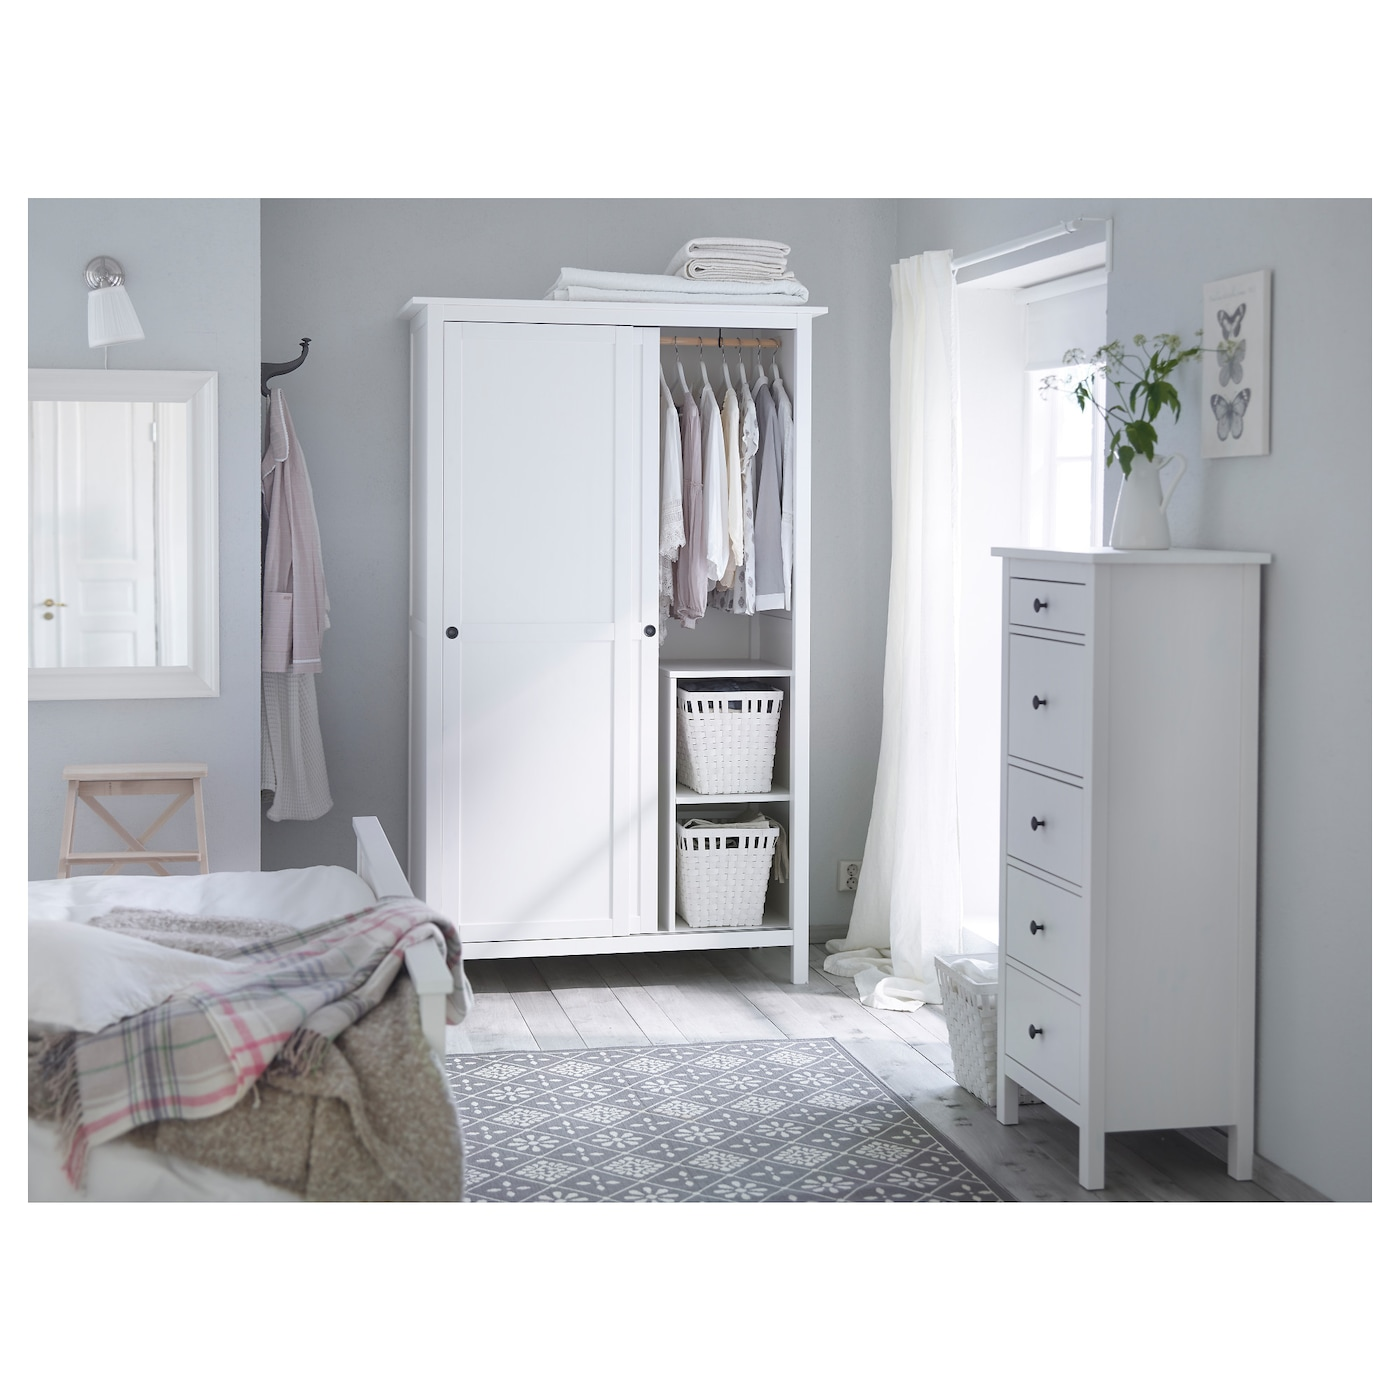 hemnes commode 5 tiroirs teint blanc 58x131 cm ikea. Black Bedroom Furniture Sets. Home Design Ideas